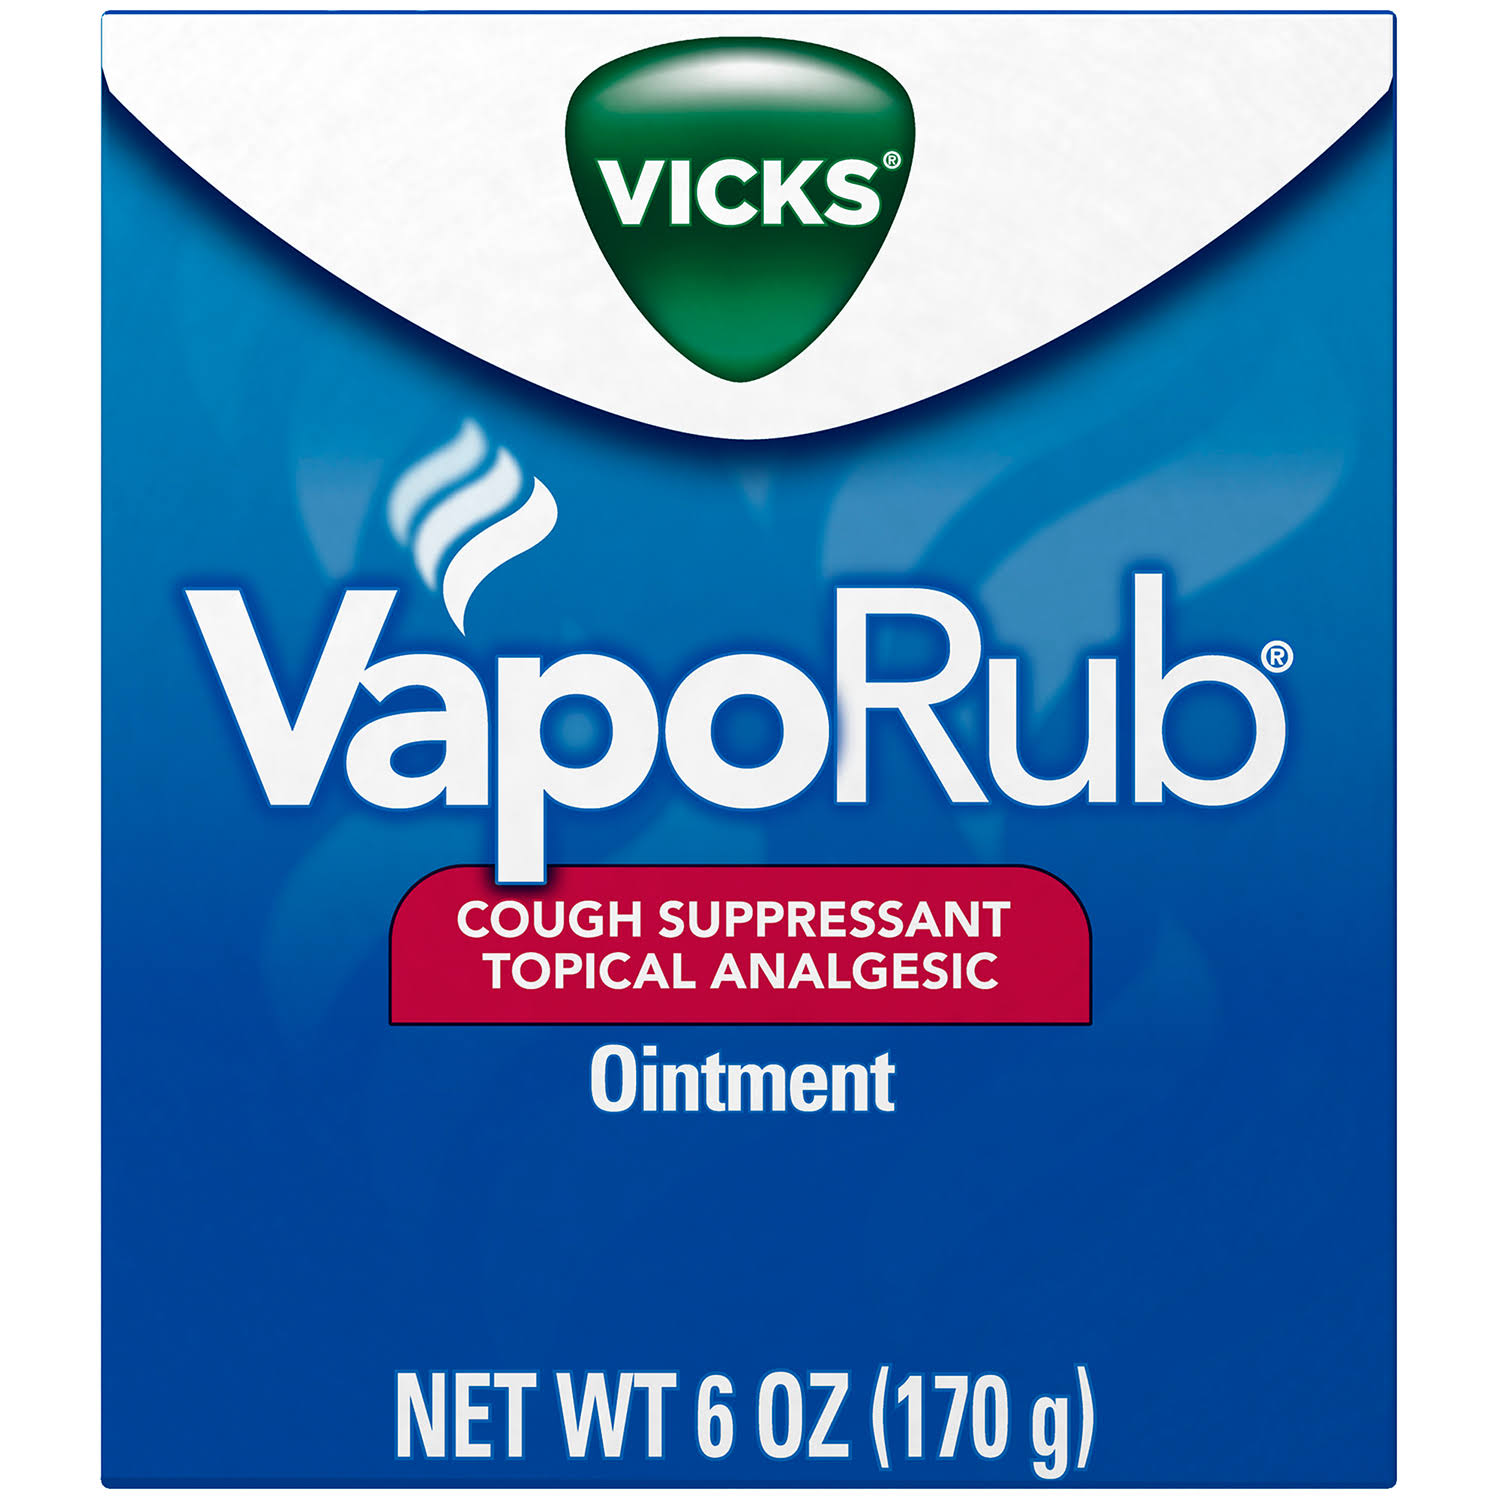 Vicks VapoRub Cough Suppressant Topical Analgesic Ointment - 6oz